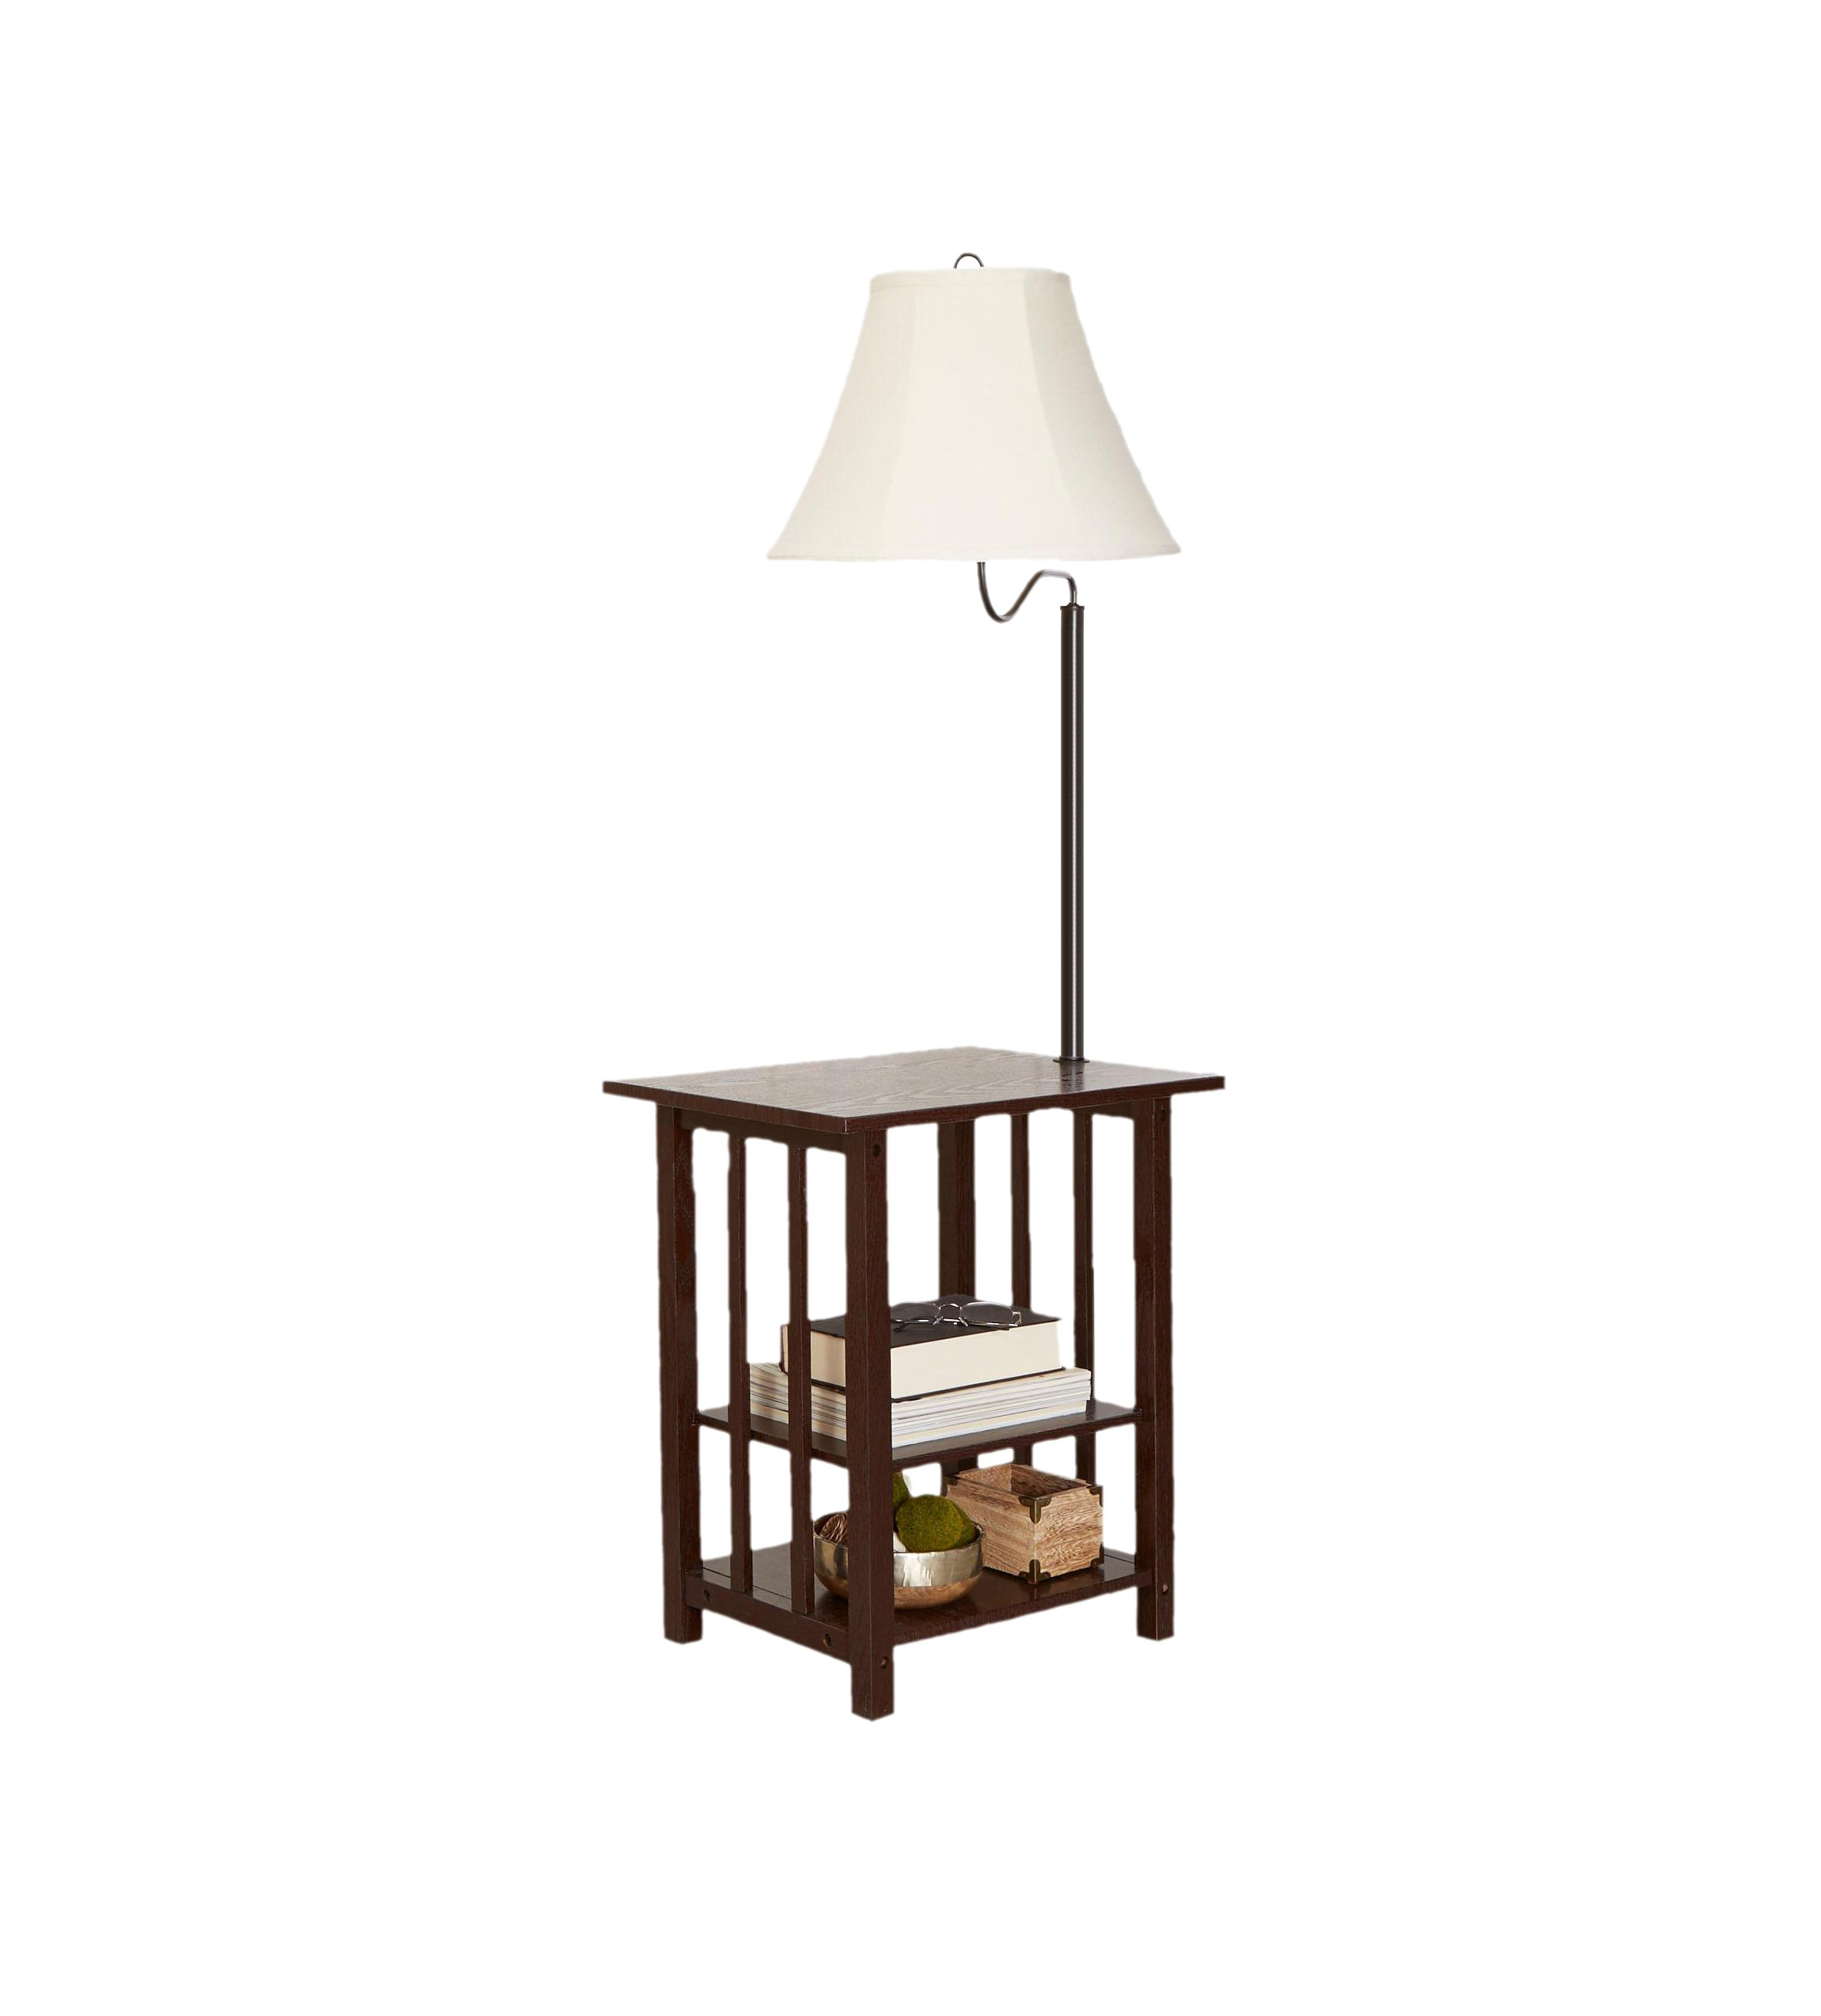 Combination Floor Lamp End Table Magazine with 3 Rack, Floor Lamp Table with Shelves & Swing ARM, Modern Floor Lamp with Table Attached, Floor Lamps with Table for Living Room, Bed room, Reading